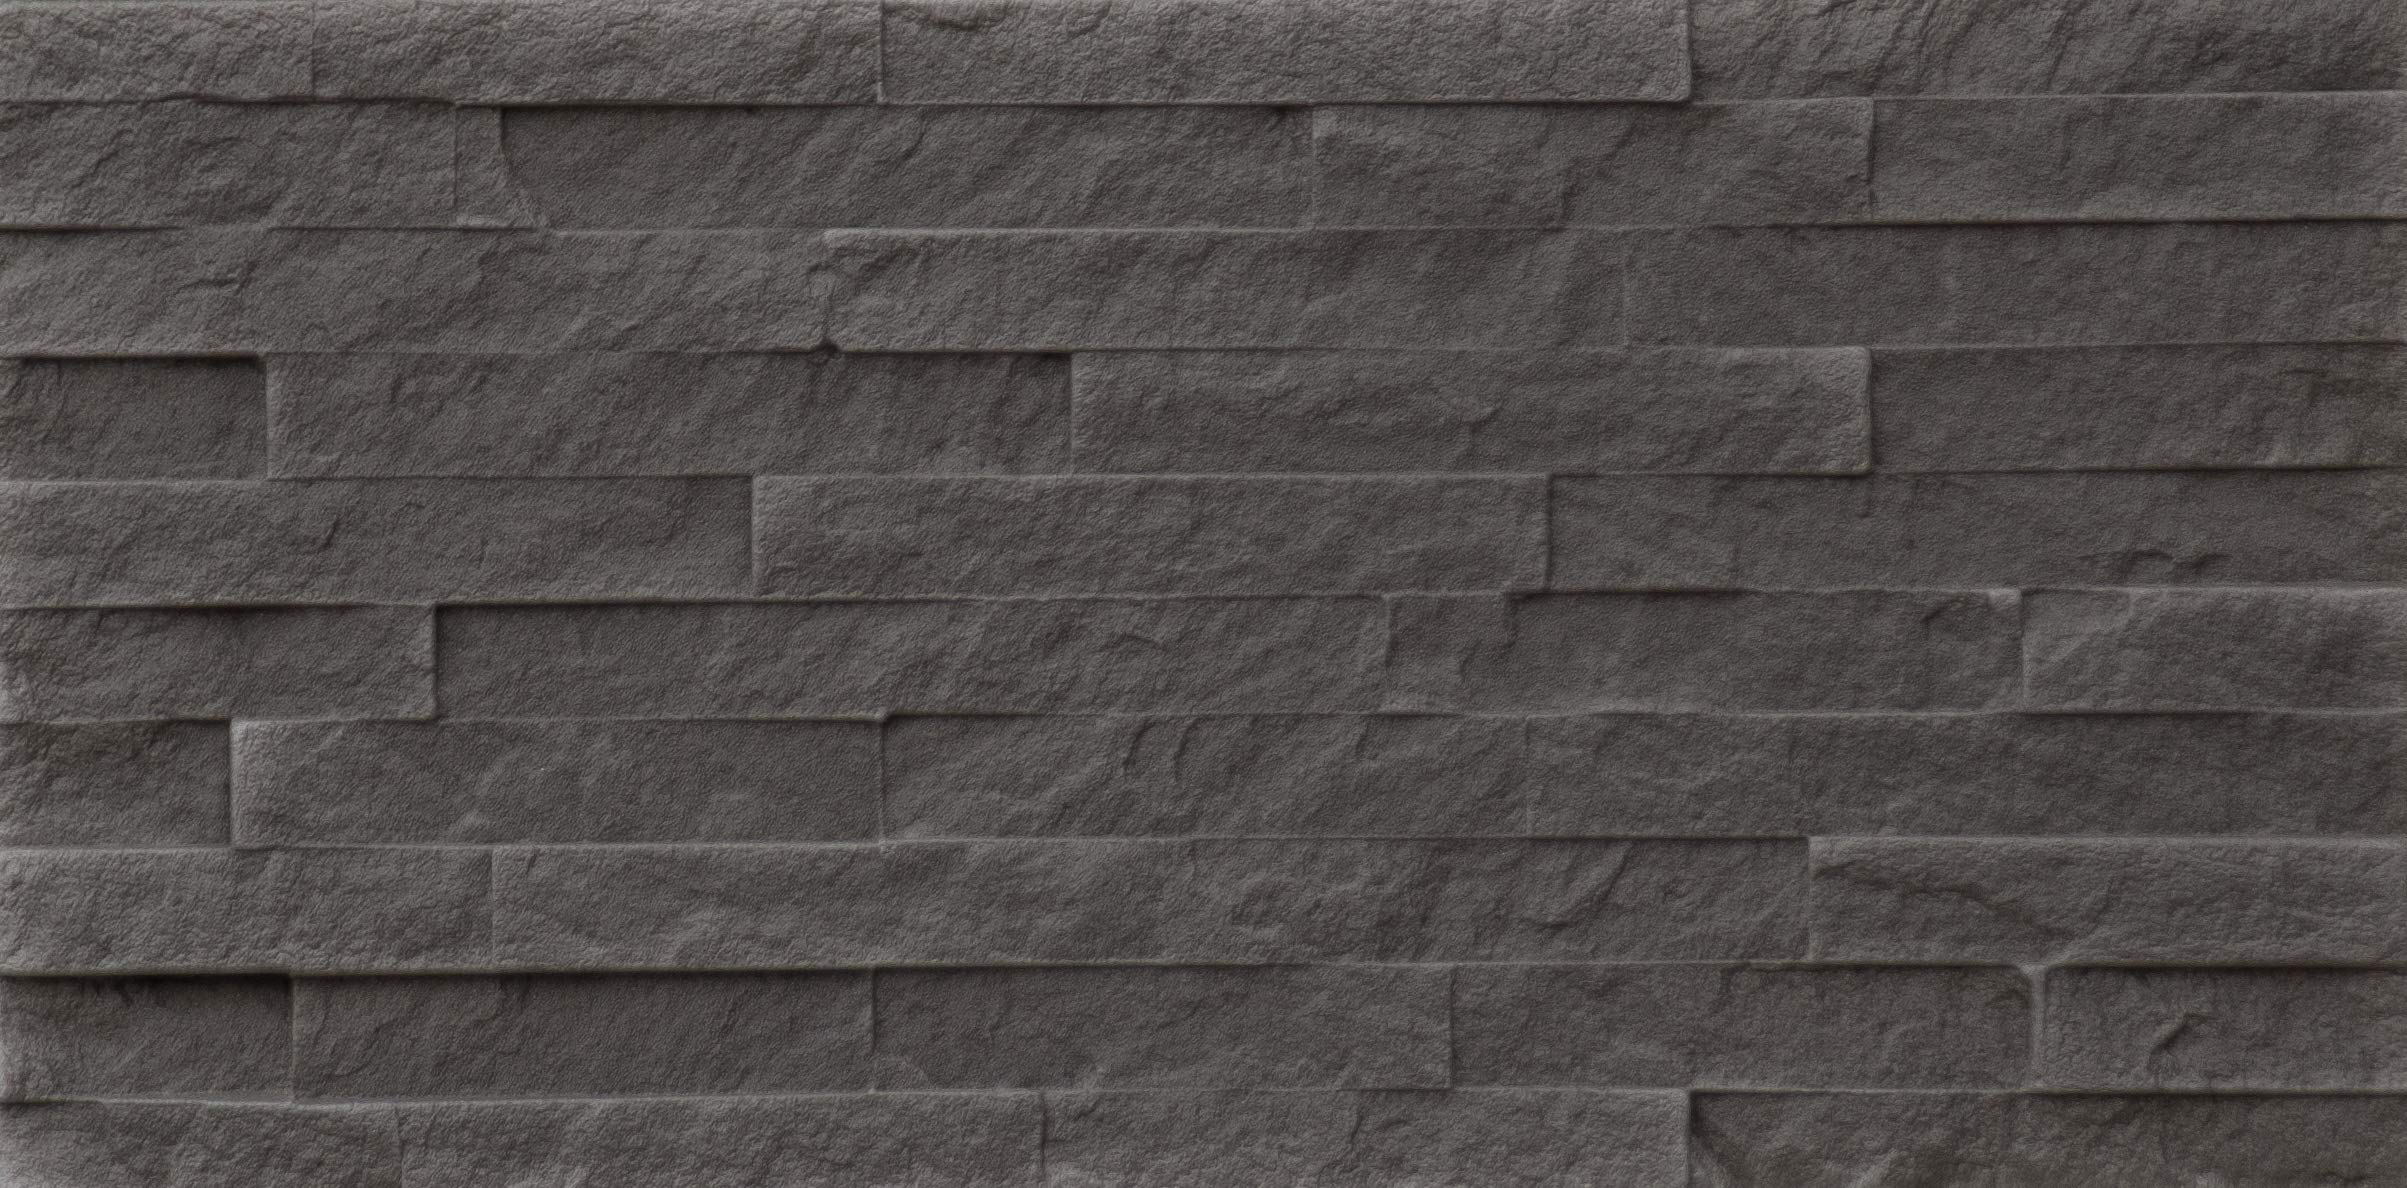 Light Grey Block by ImagiWall, Peel and Stick 3D Foam Wall Tiles (4-Pack, 8 Sq Ft)